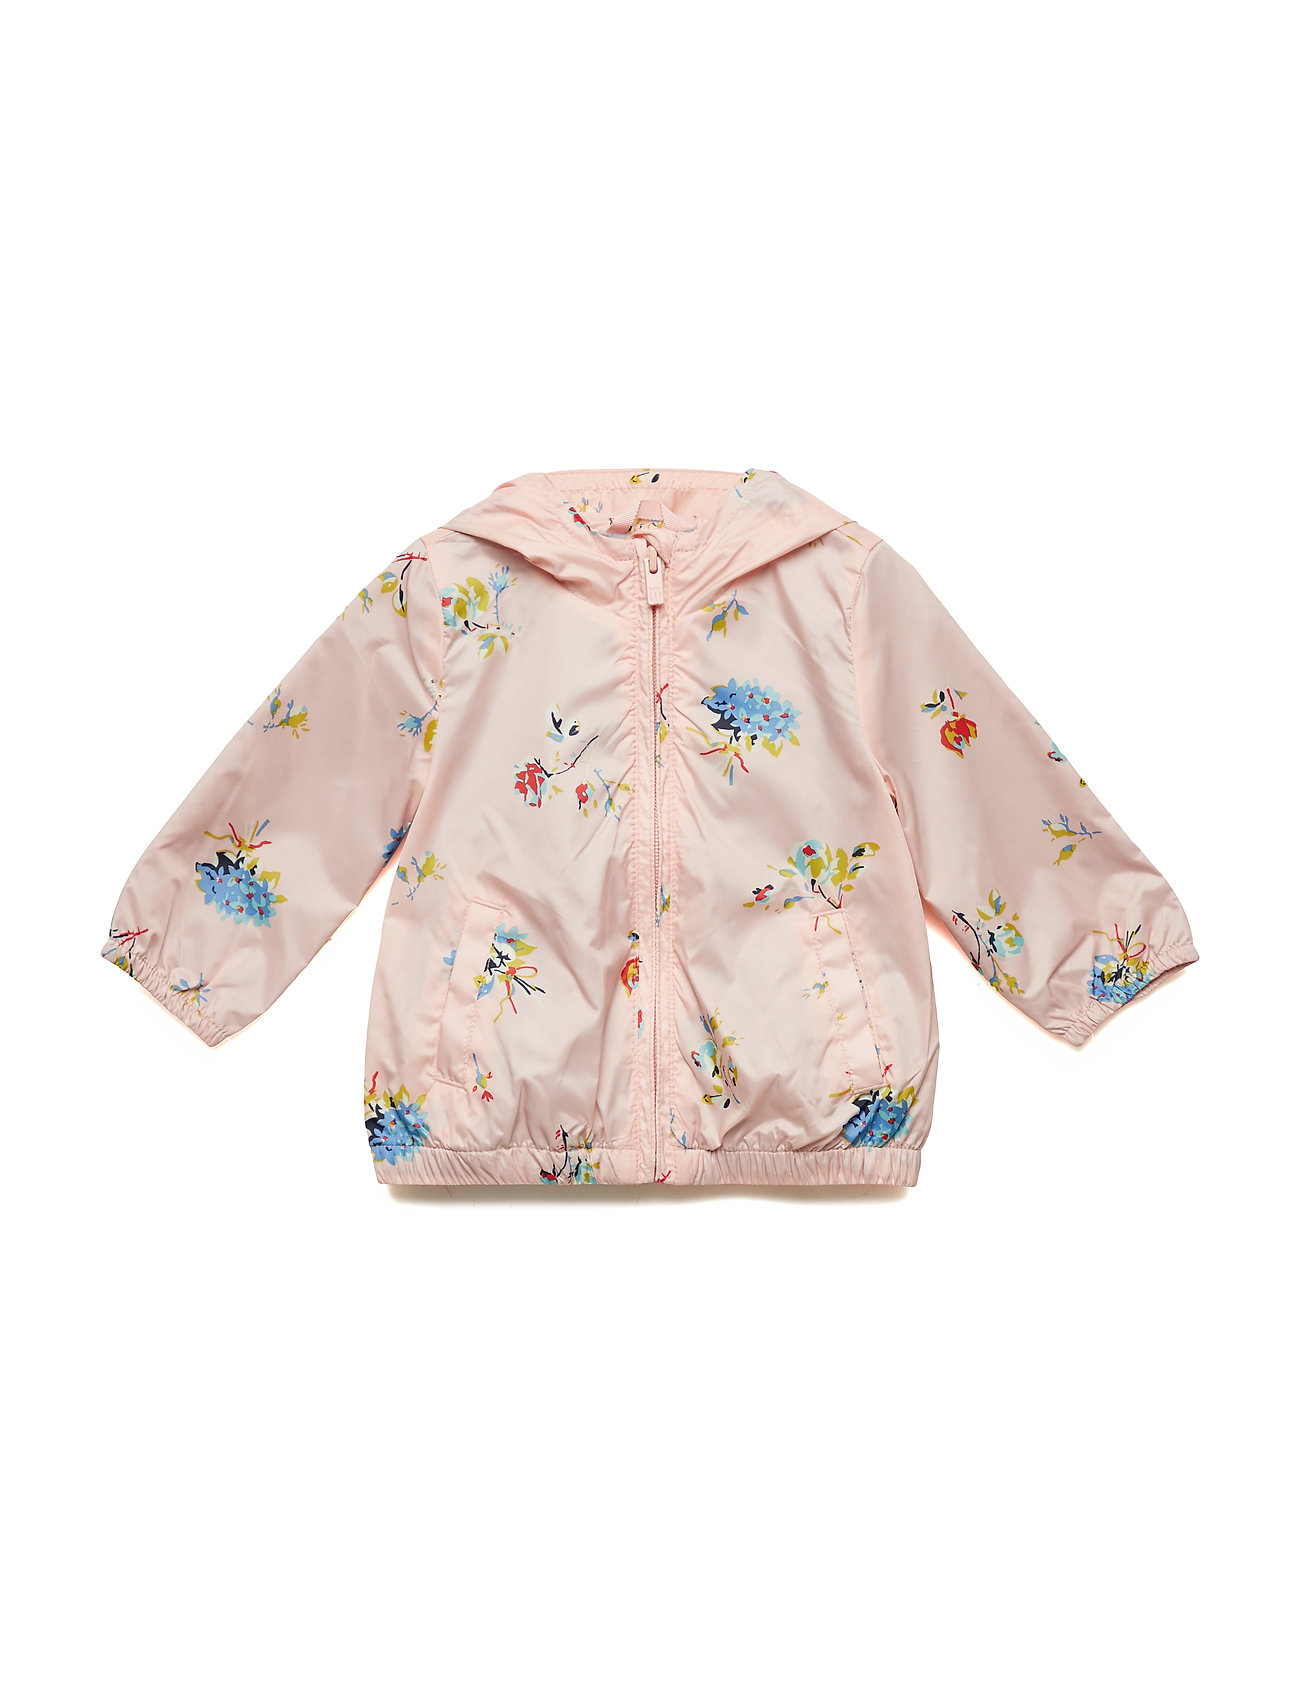 GAP Toddler Floral Jersey-Lined Windbuster - PINK FLORAL 1